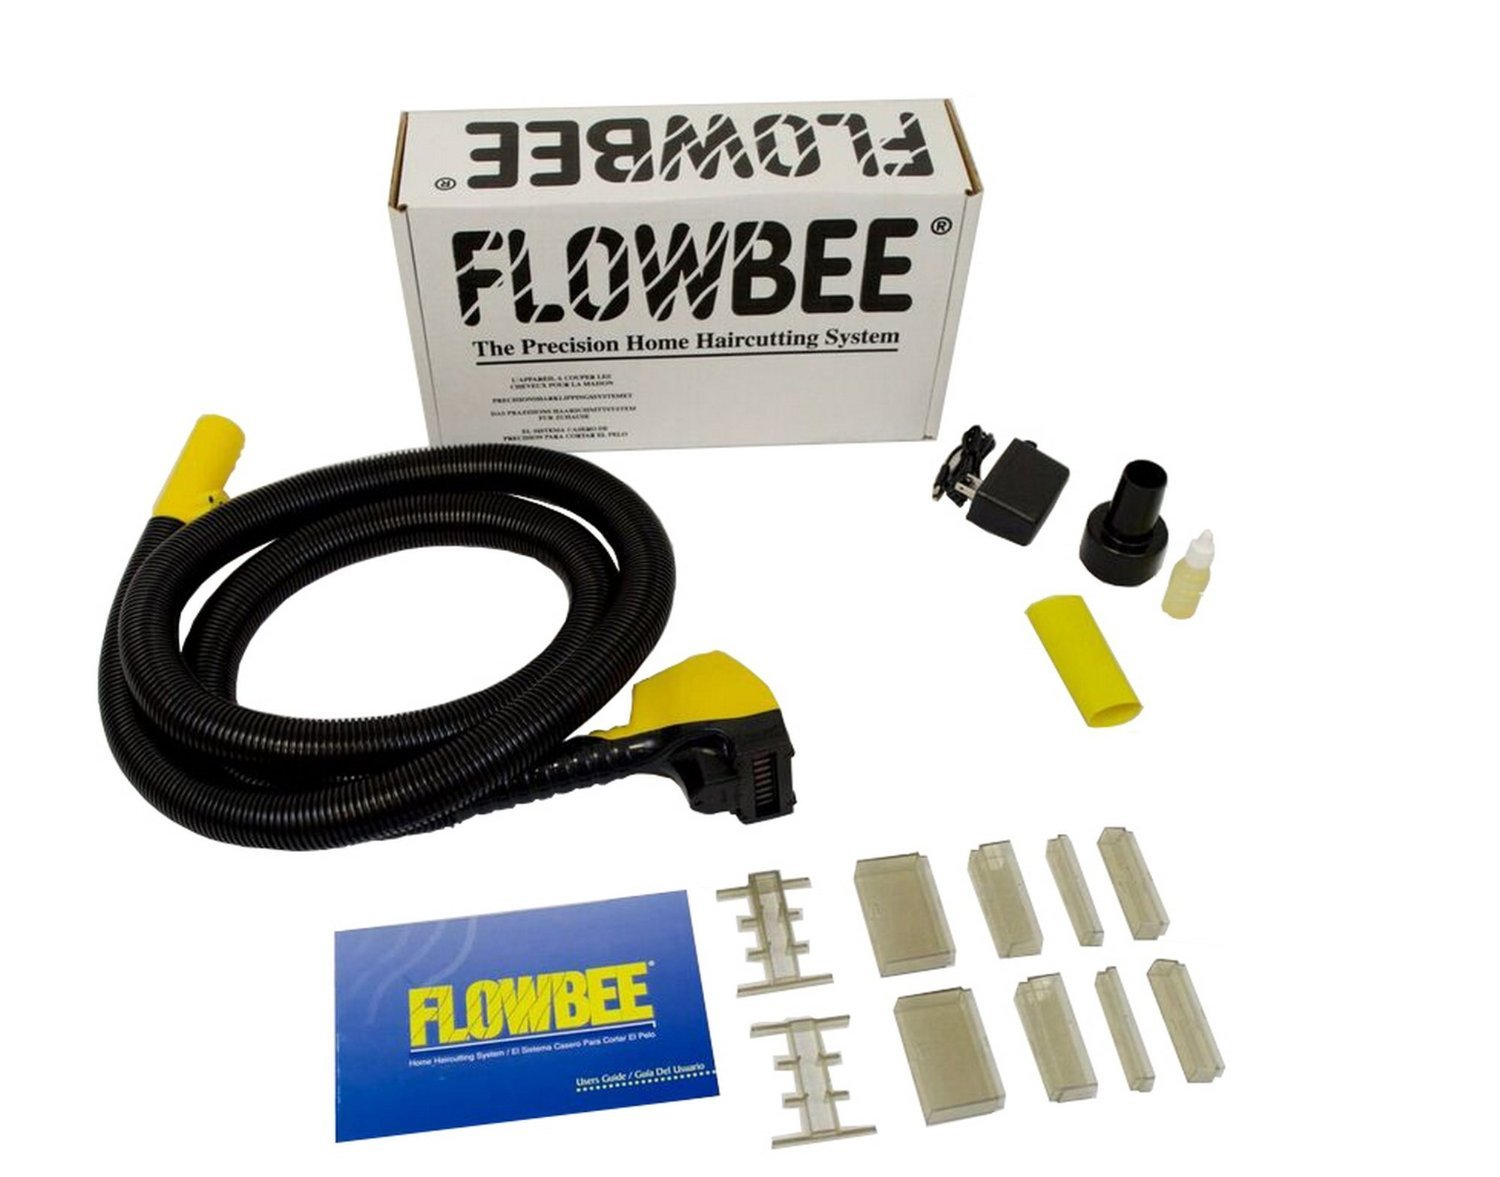 Flowbee Haircutting System by FLOWBEE